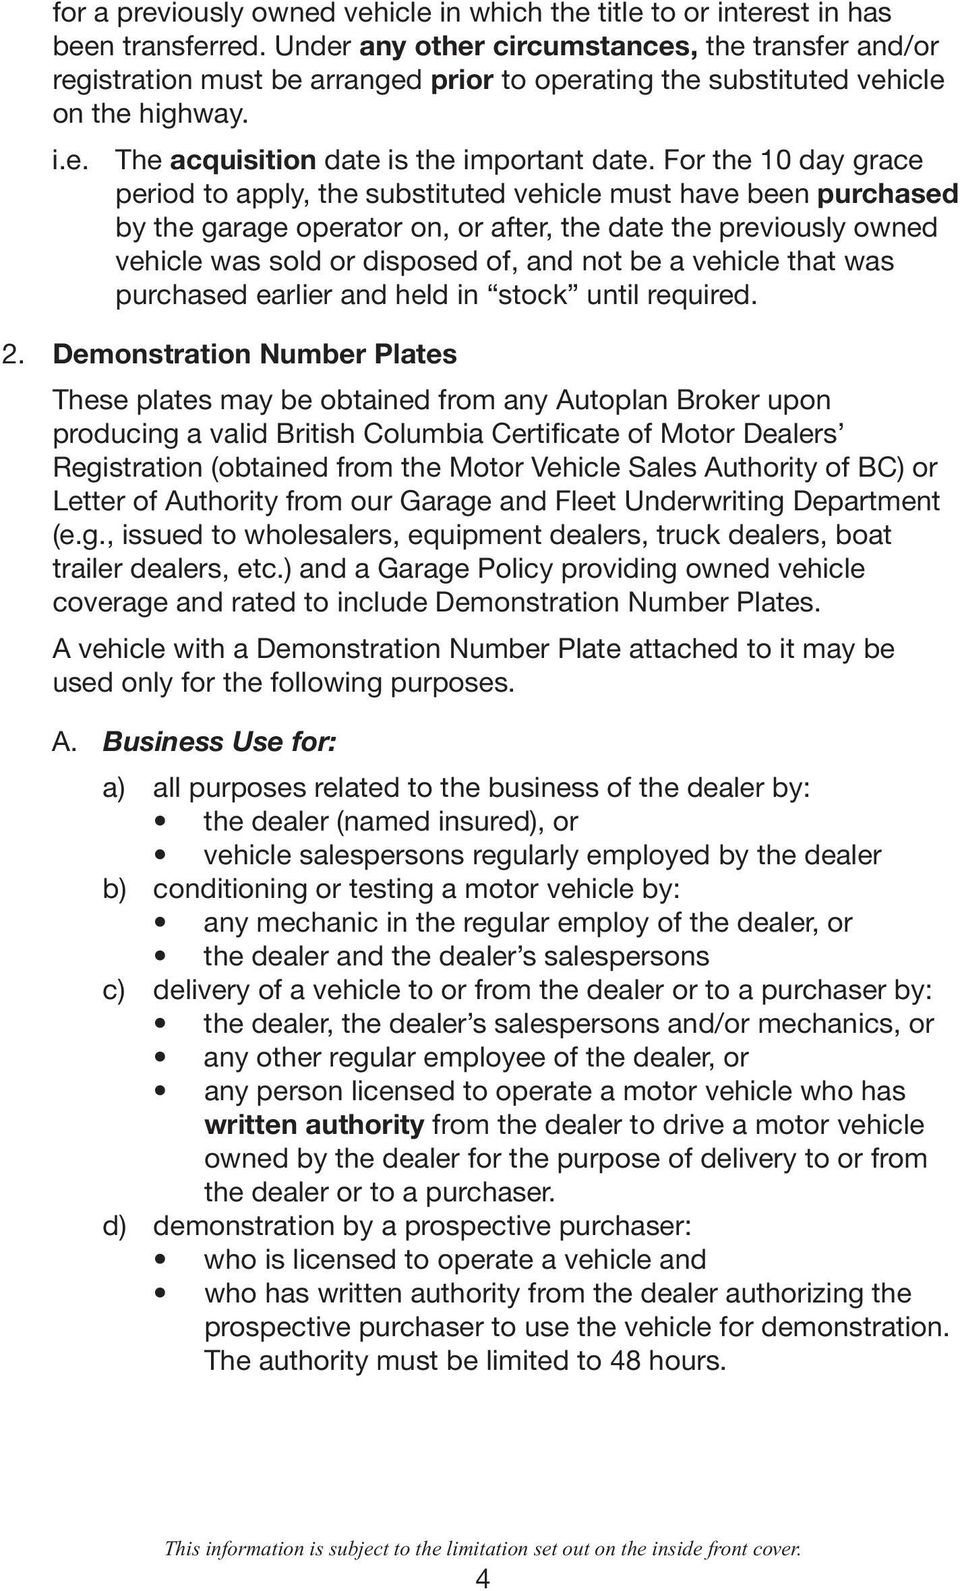 For the 10 day grace period to apply, the substituted vehicle must have been pur chased by the garage operator on, or after, the date the previously owned vehicle was sold or disposed of, and not be